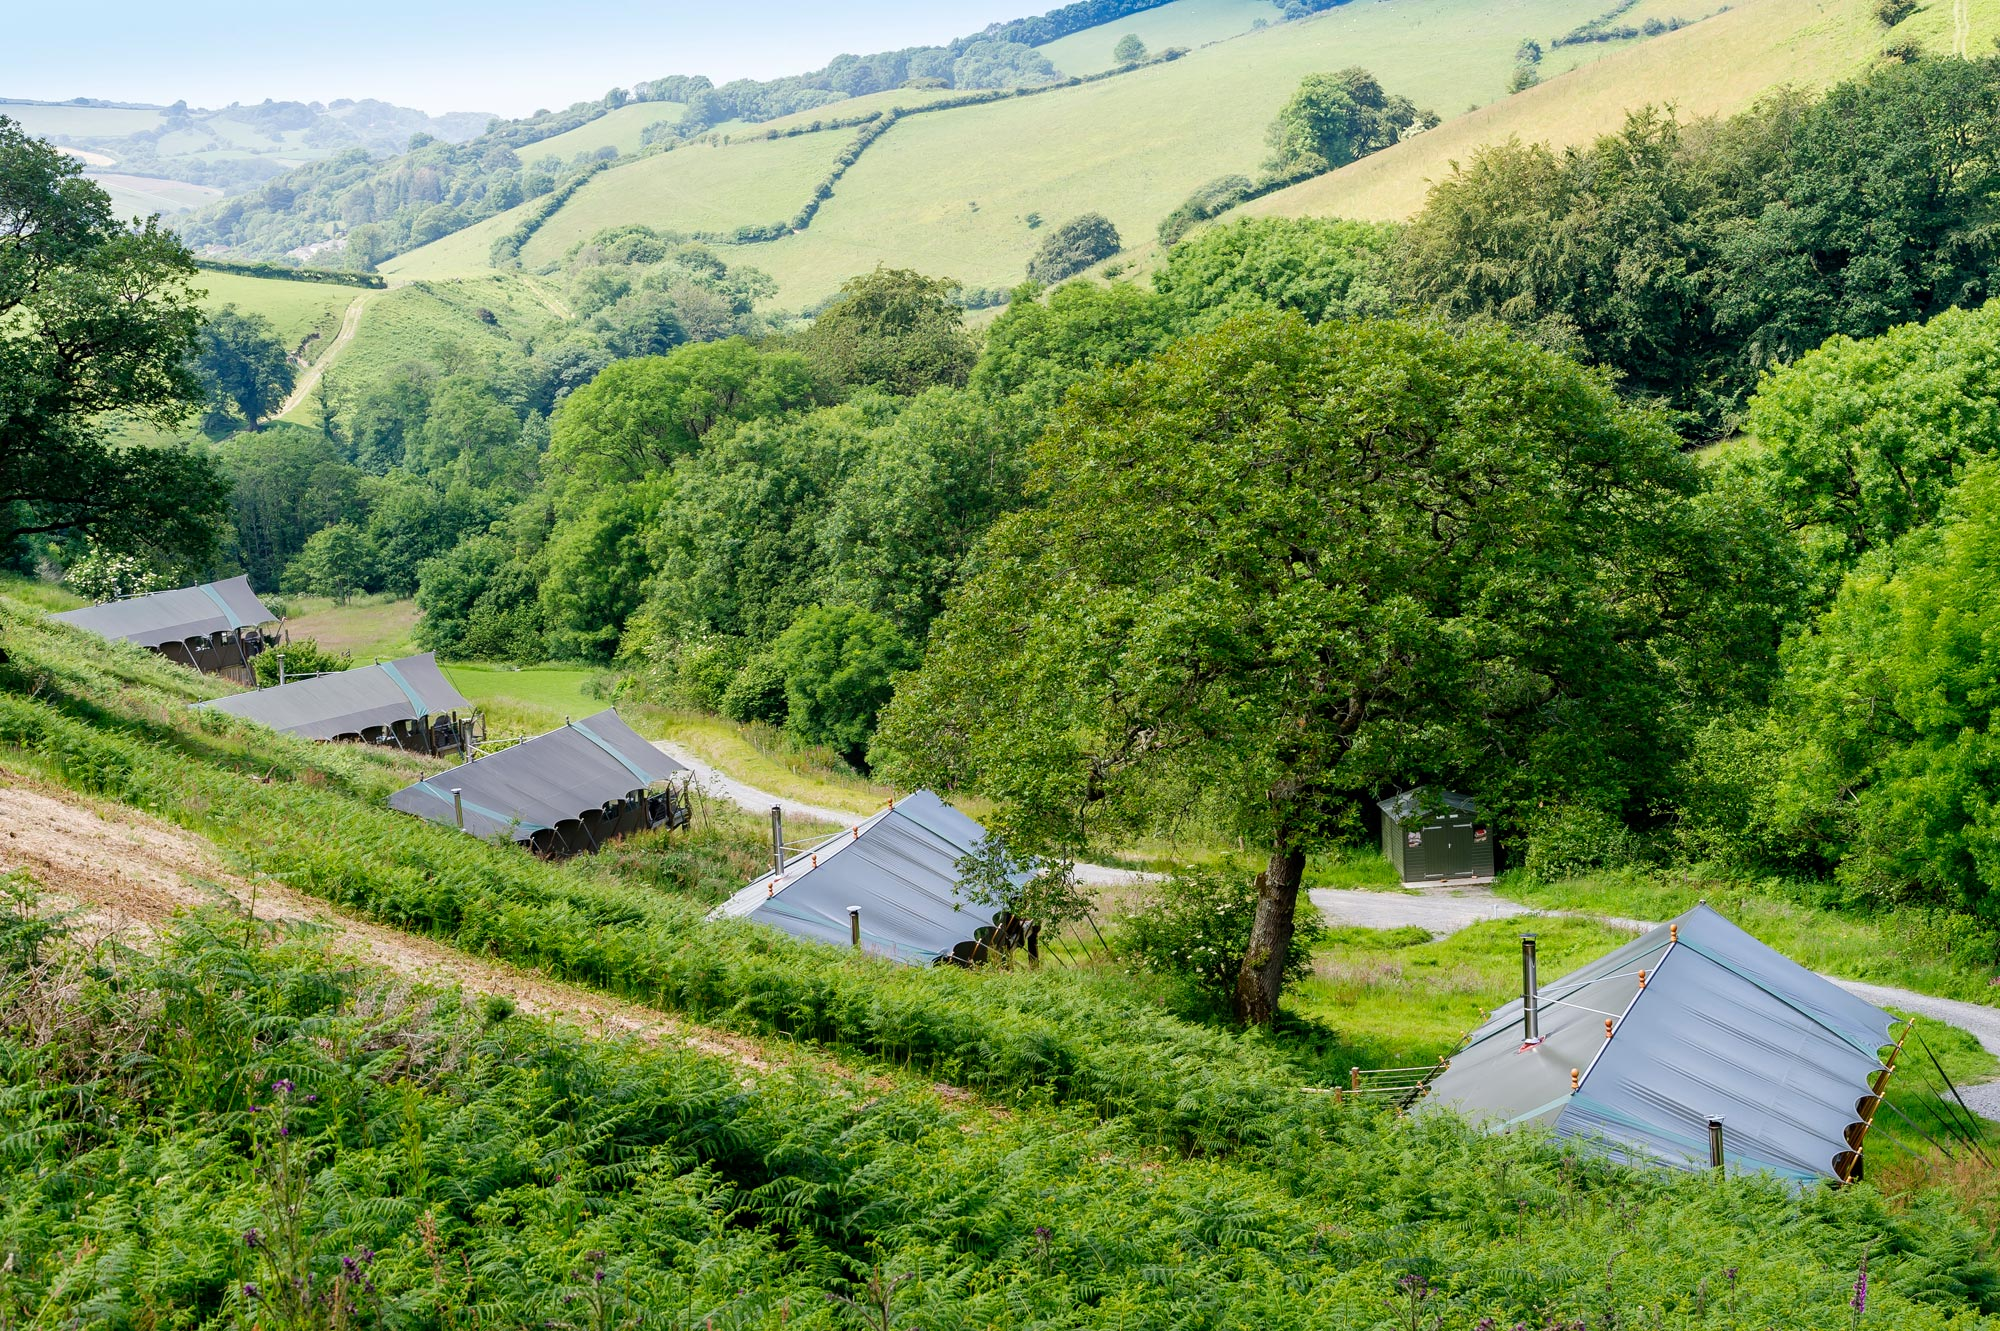 Longlands location is nestled in North Devon's beautiful countryside